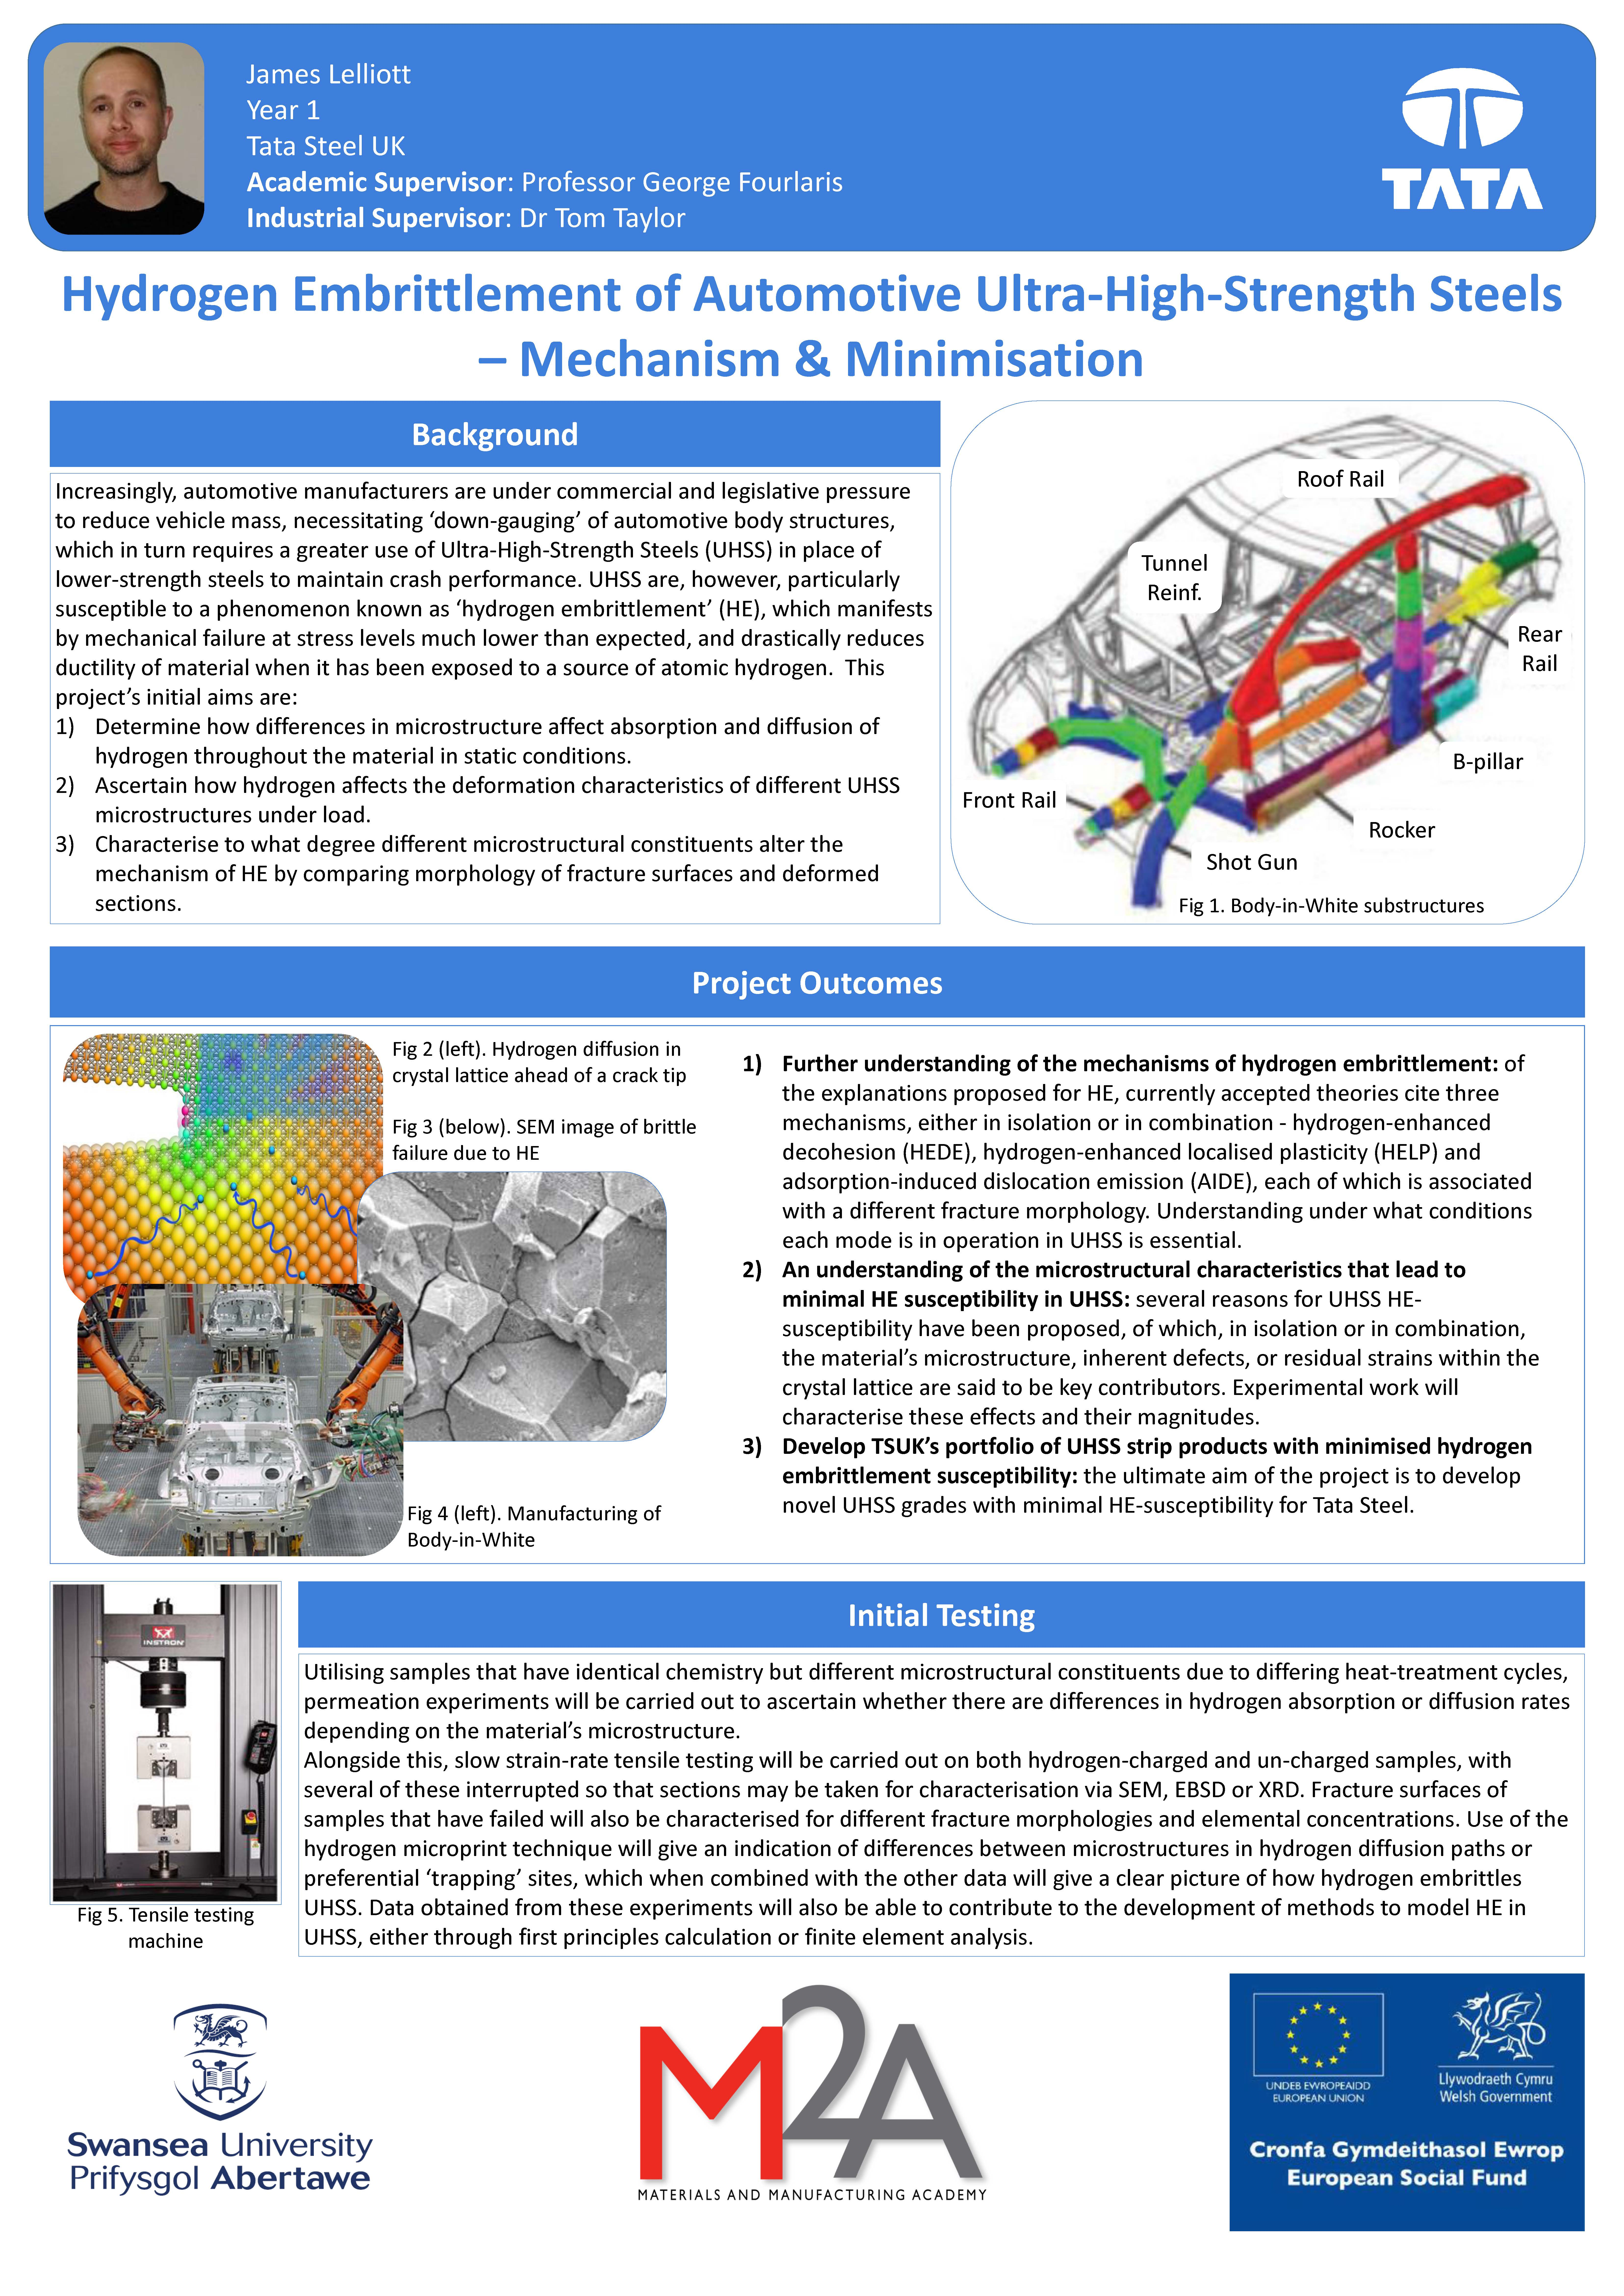 Hydrogen Embrittlement of Automotive Ultra-High-Strength Steels – Mechanism & Minimisation